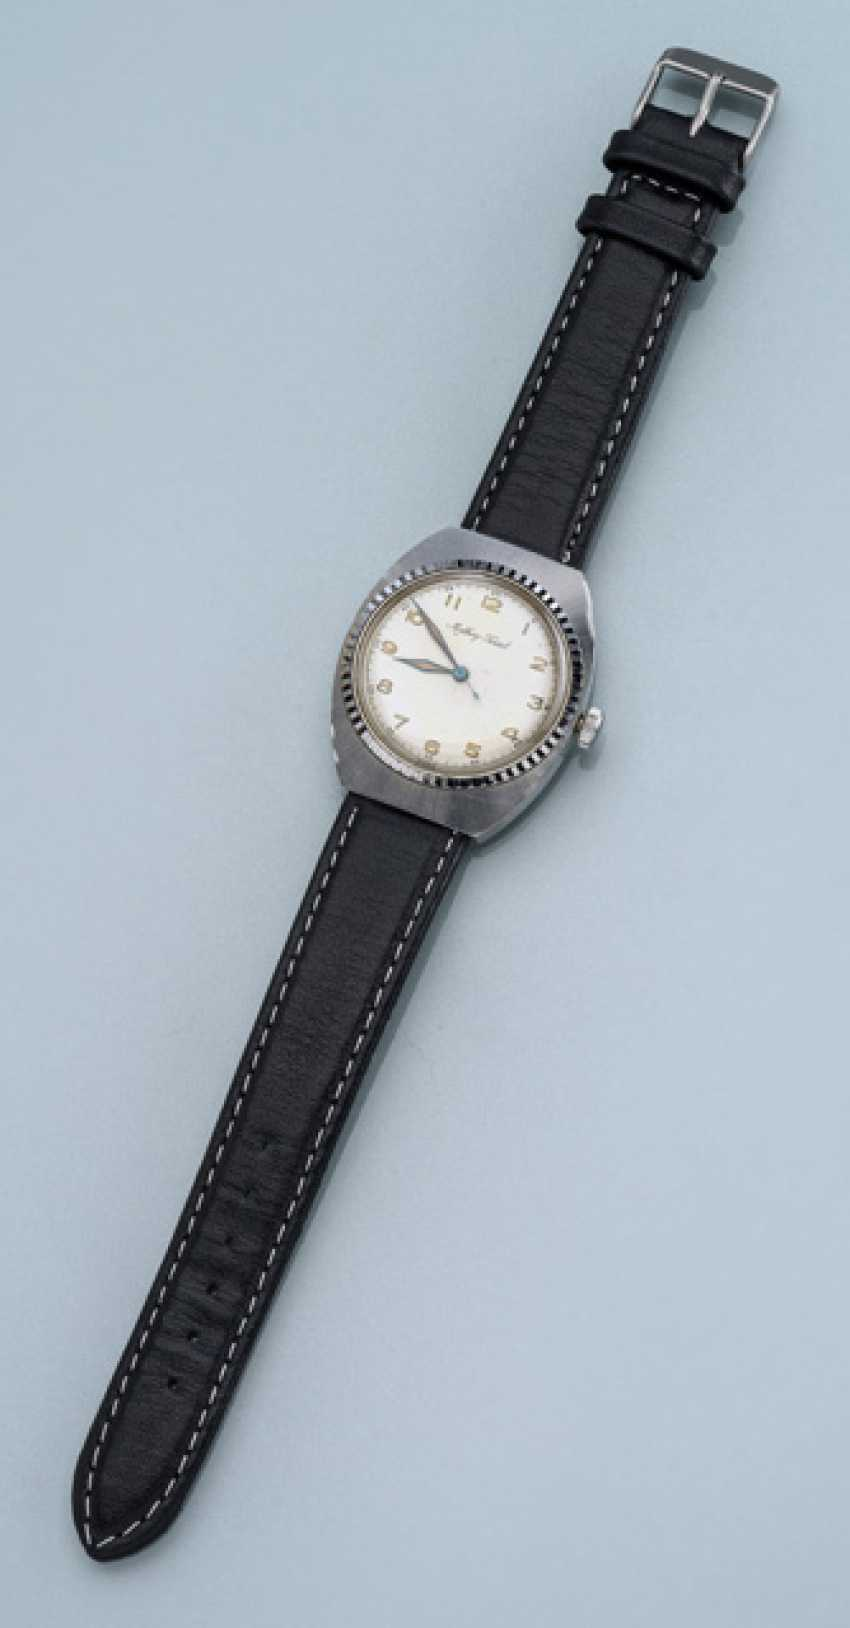 Mathey-Tissot Vintage Armbanduhr - photo 1